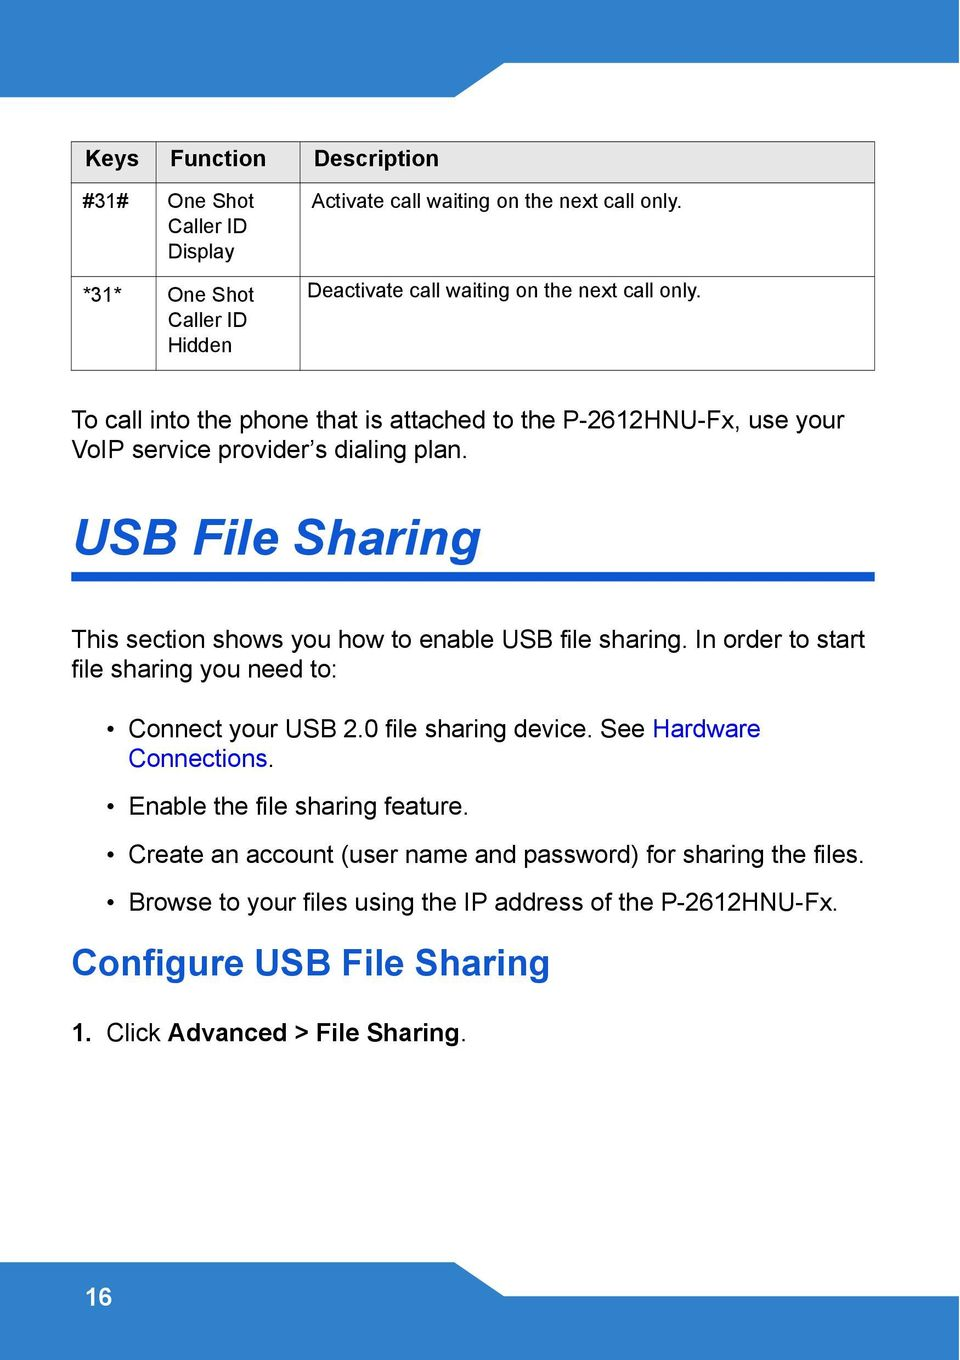 USB File Sharing This section shows you how to enable USB file sharing. In order to start file sharing you need to: Connect your USB 2.0 file sharing device.